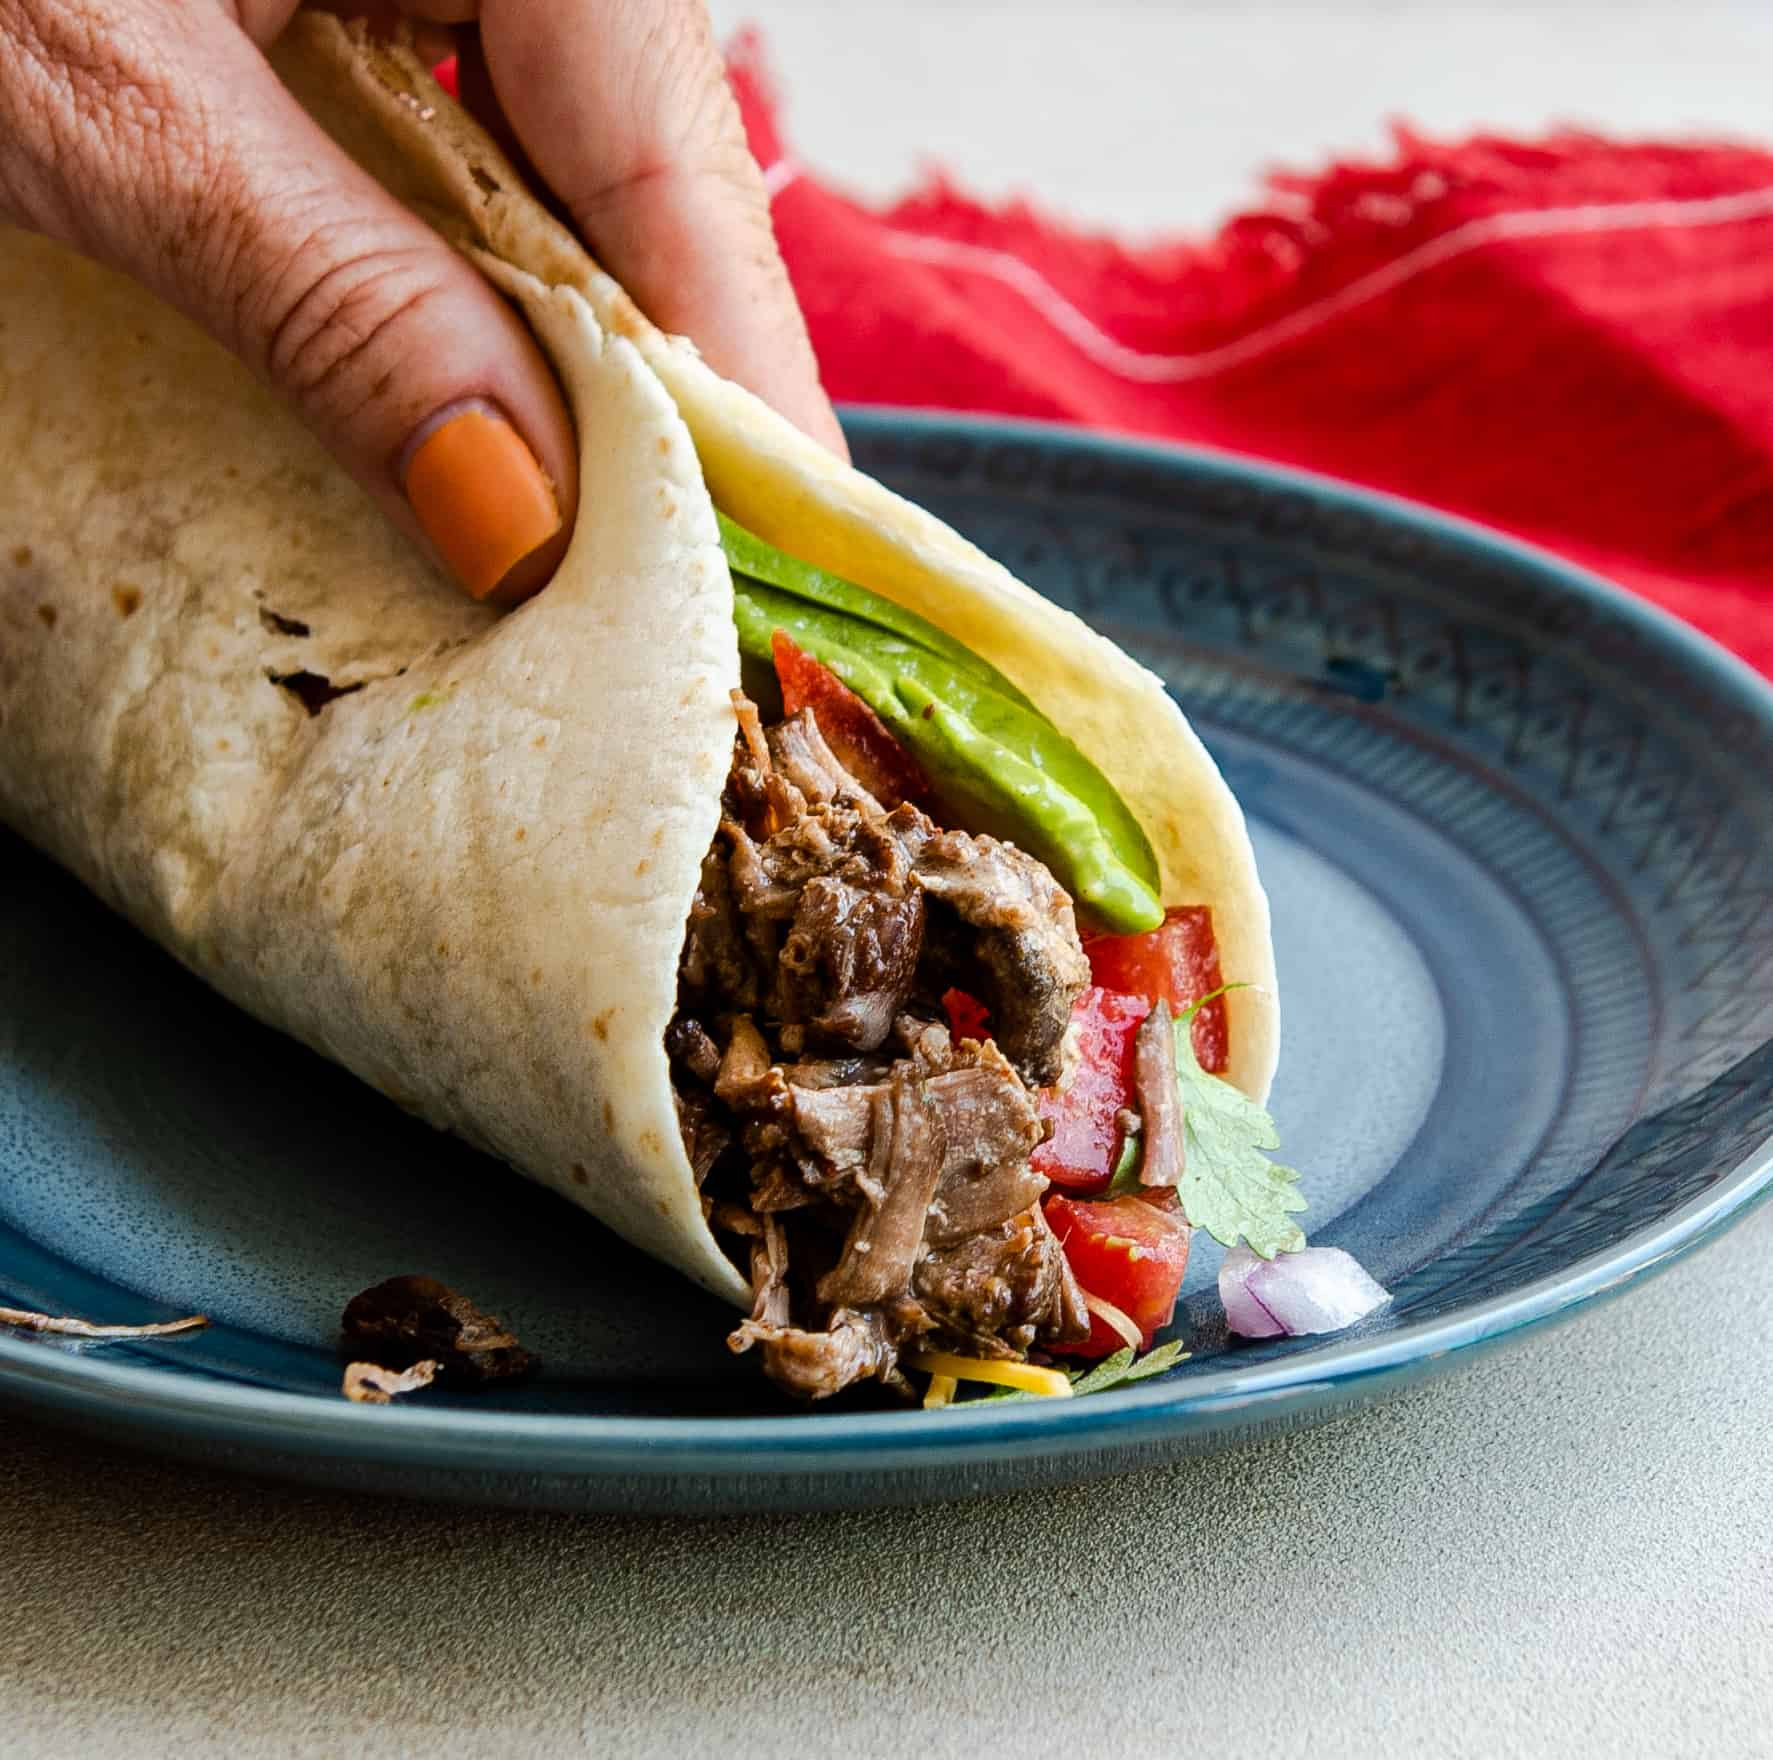 hand folding a taco on a blue plate with a red napkin